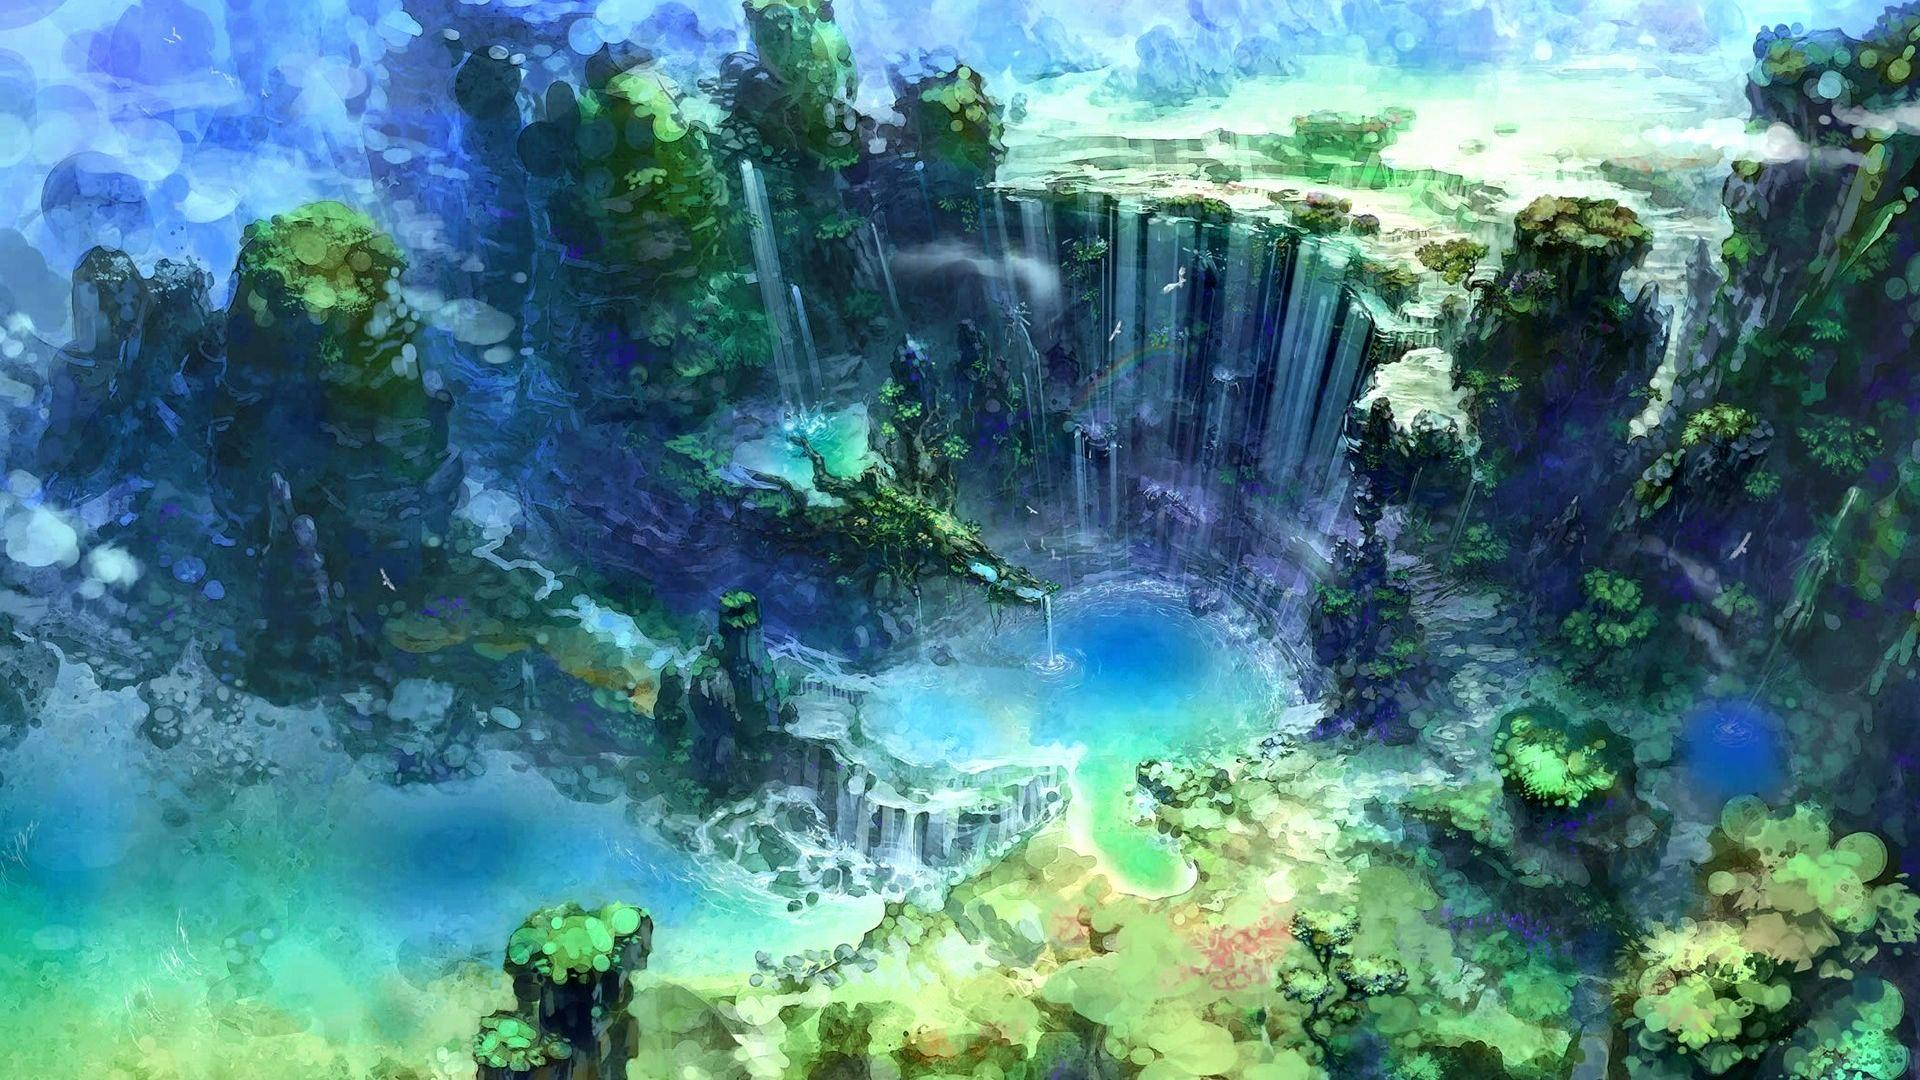 Download 610 Koleksi Wallpaper Hd Anime Nature Gratis Terbaru